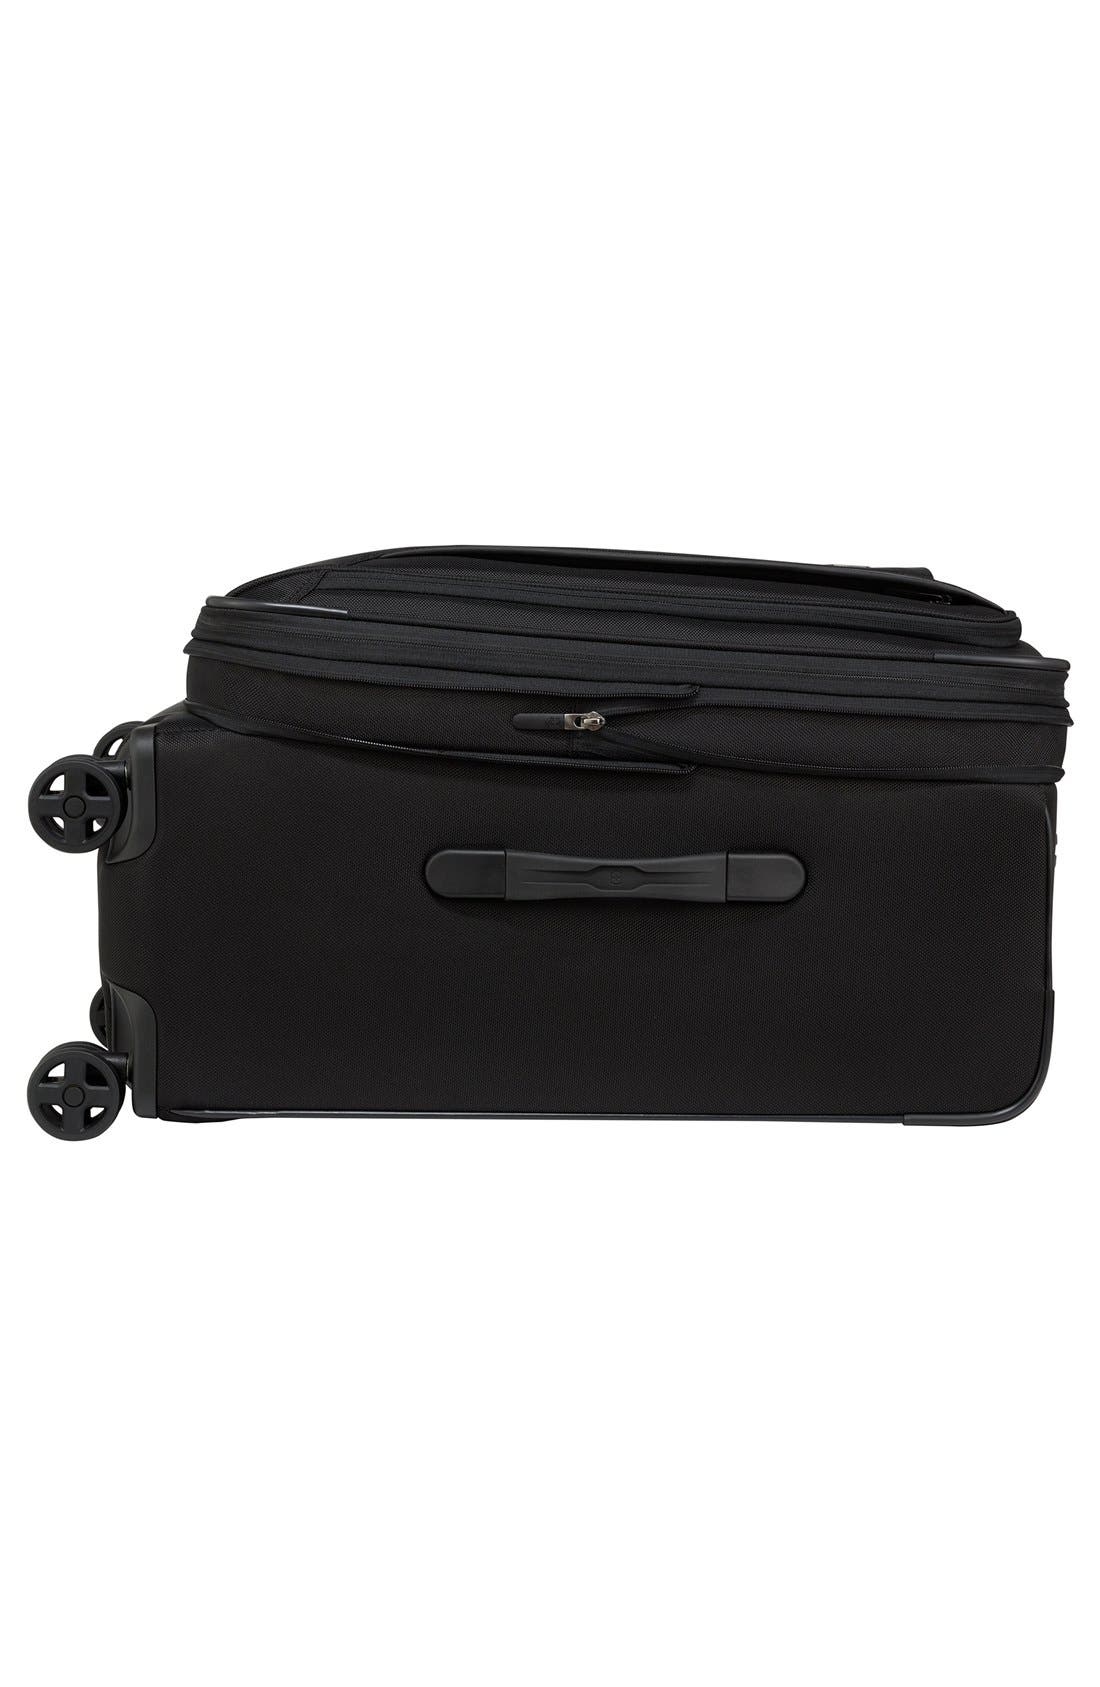 WT 5.0 Dual Caster Wheeled 24-Inch Packing Case,                             Alternate thumbnail 5, color,